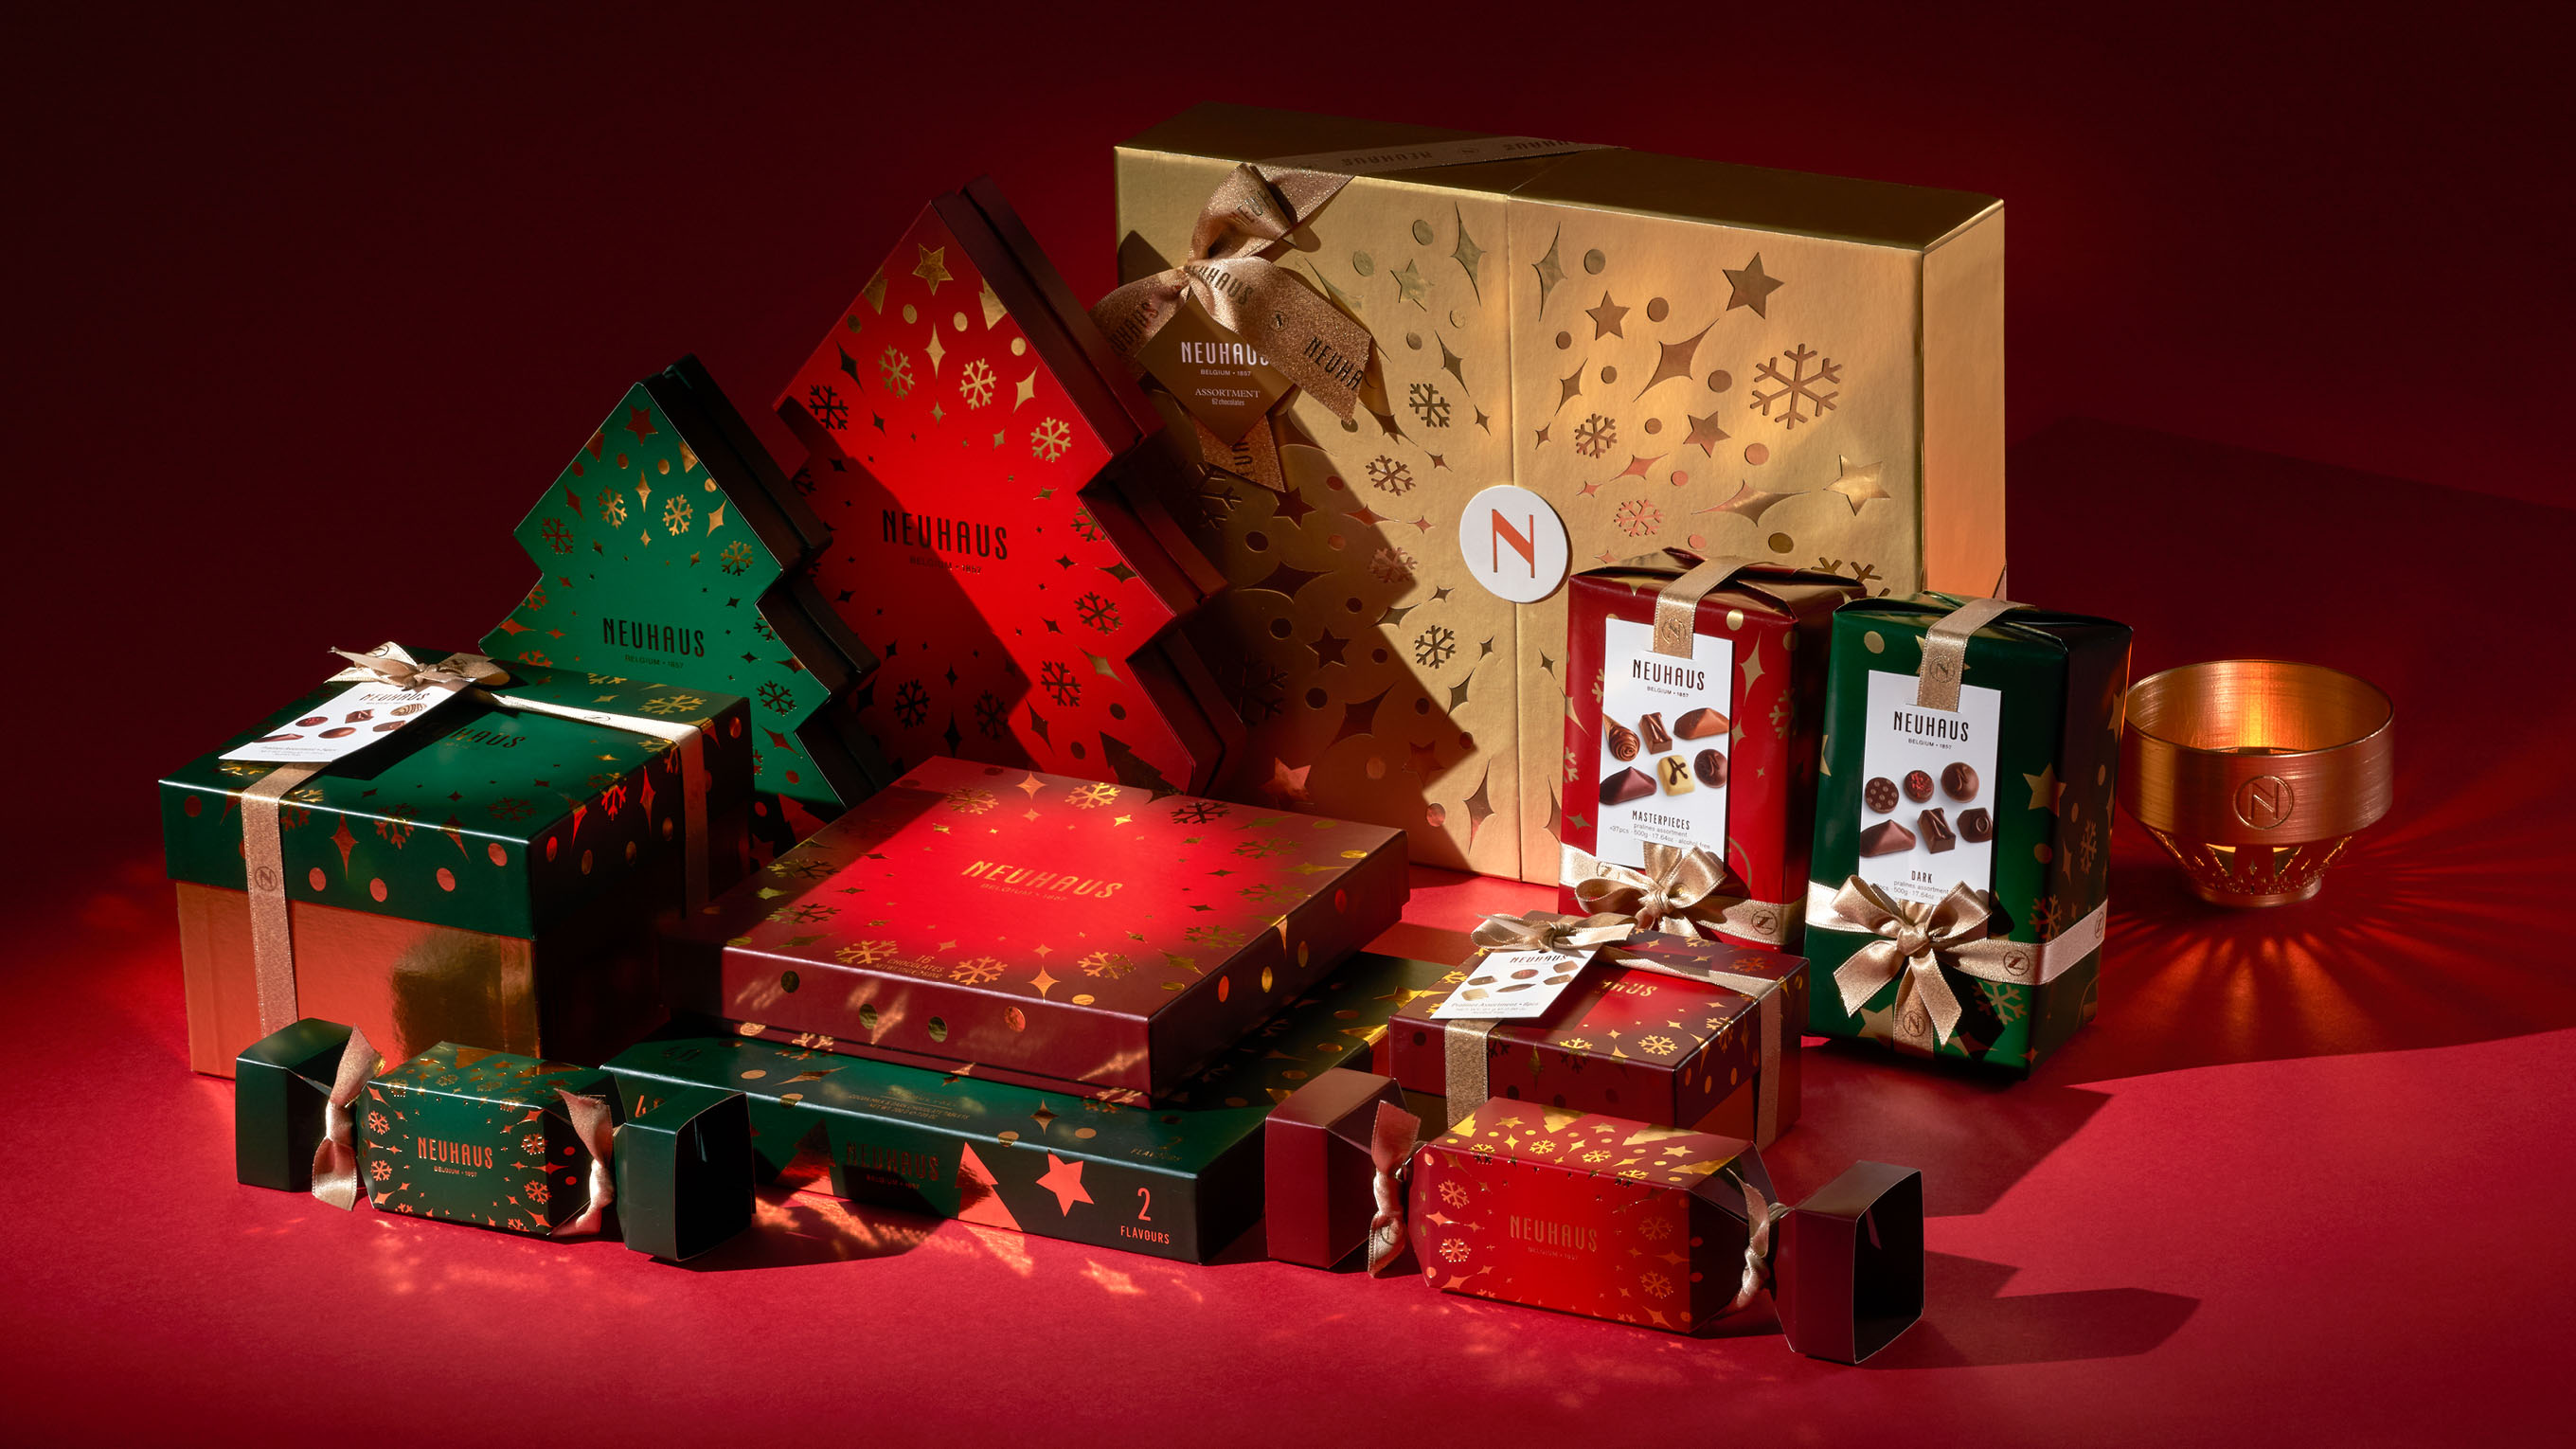 The Branding of Neuhaus' Heartwarming Holidays Collection by WeWantMore